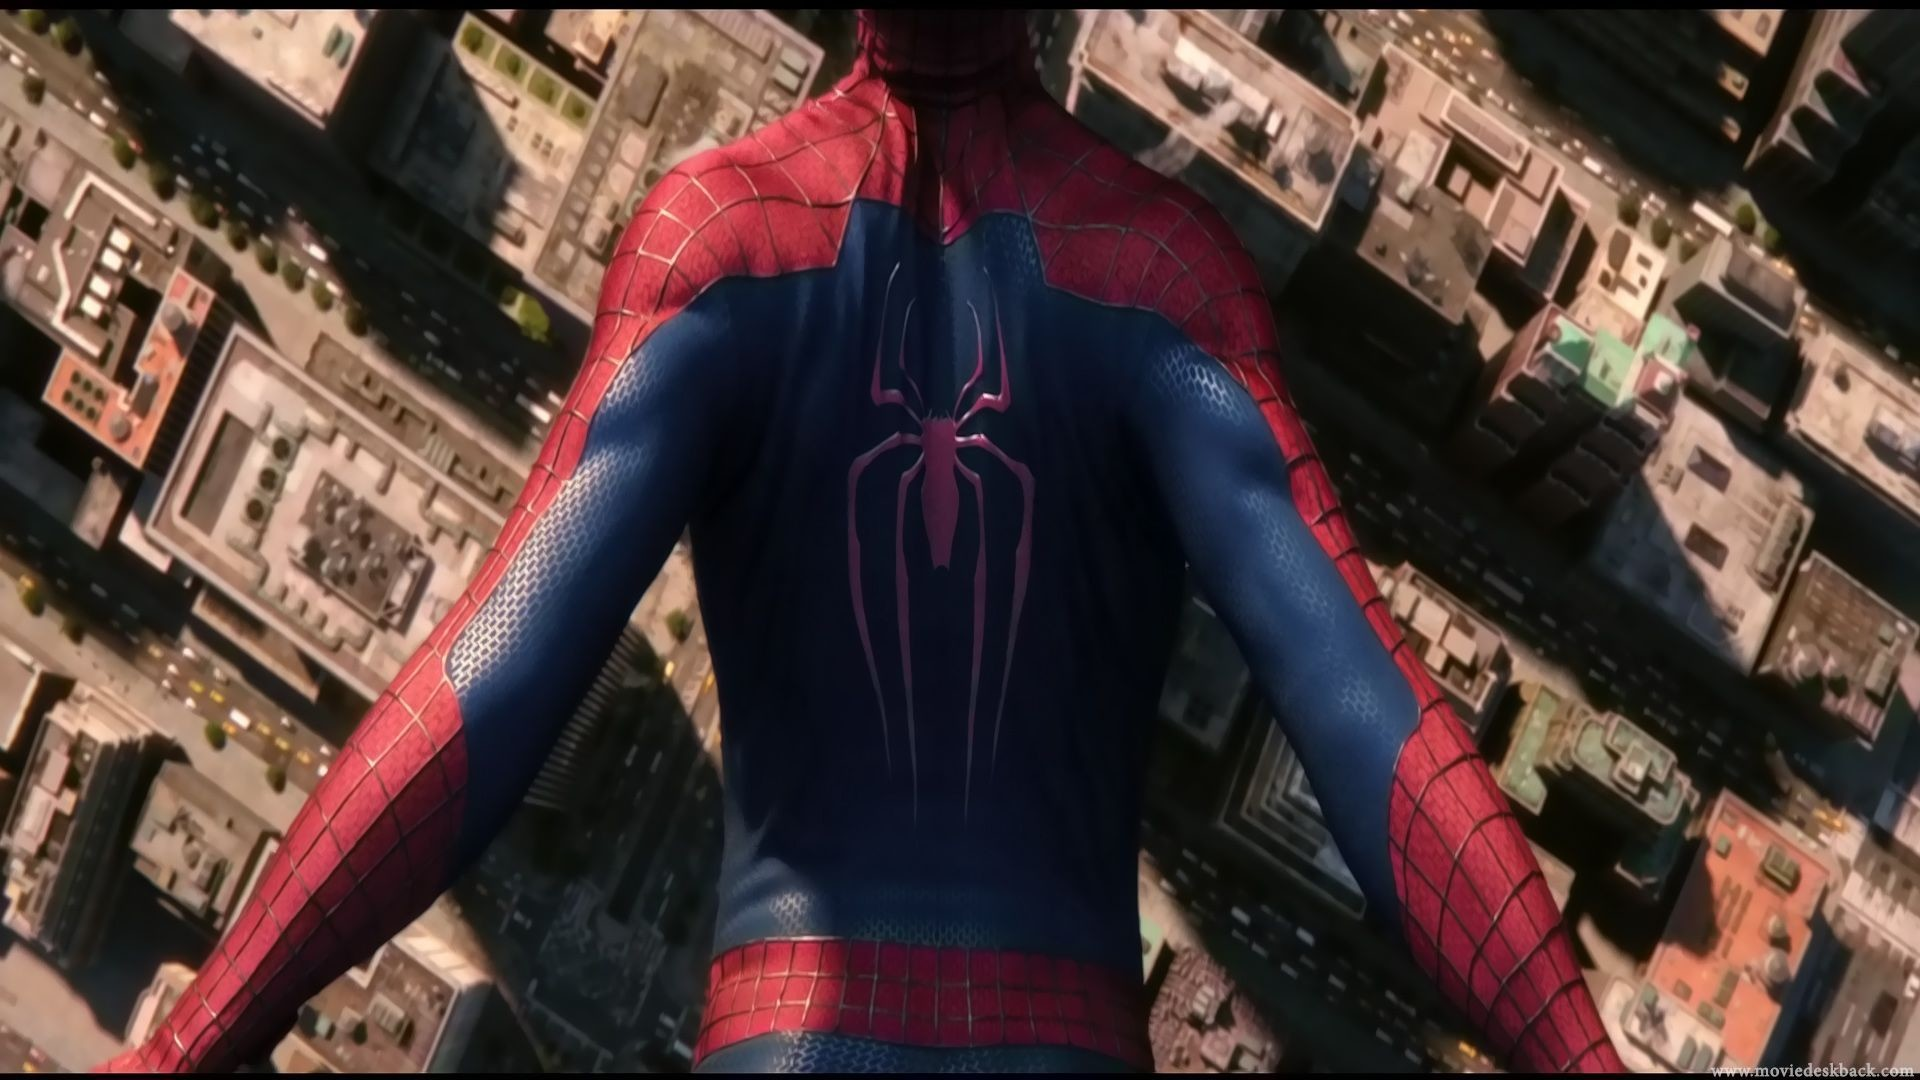 "1920x1080  The Amazing Spider Man 2 Wallpapers, Images Collection of The  ..."">"